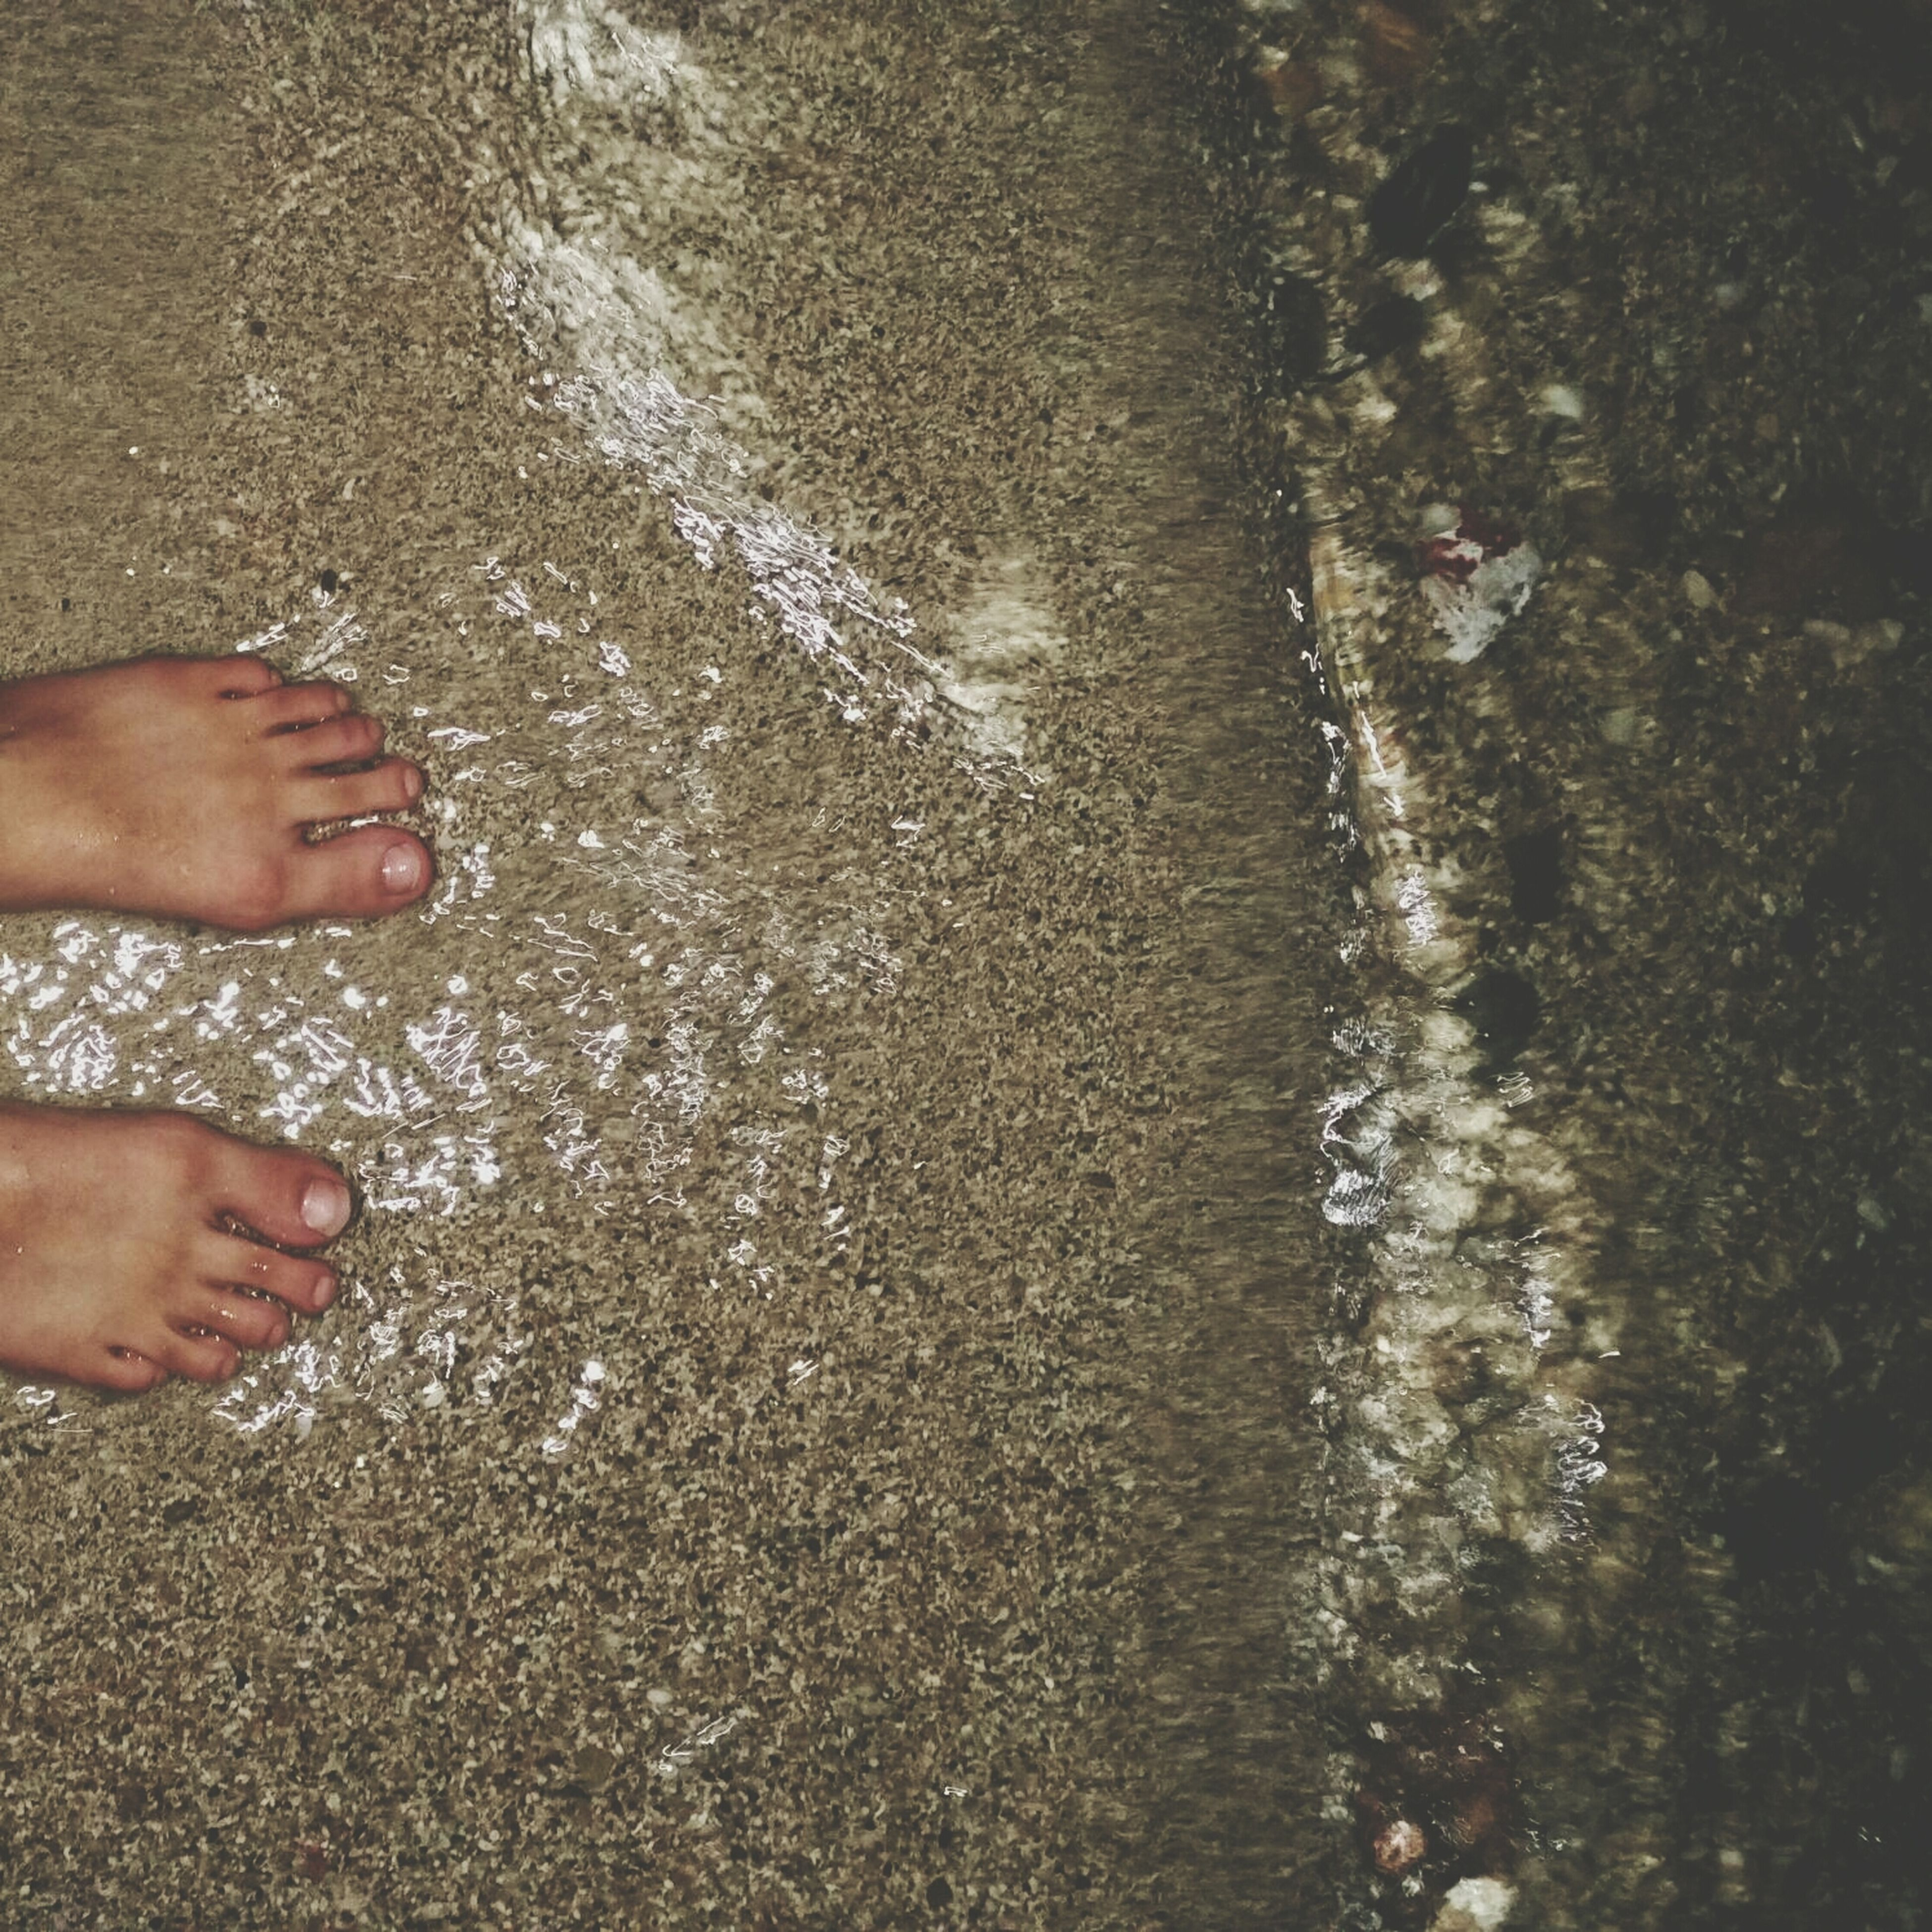 water, lifestyles, low section, person, leisure activity, high angle view, beach, human foot, barefoot, personal perspective, standing, part of, unrecognizable person, wet, men, shore